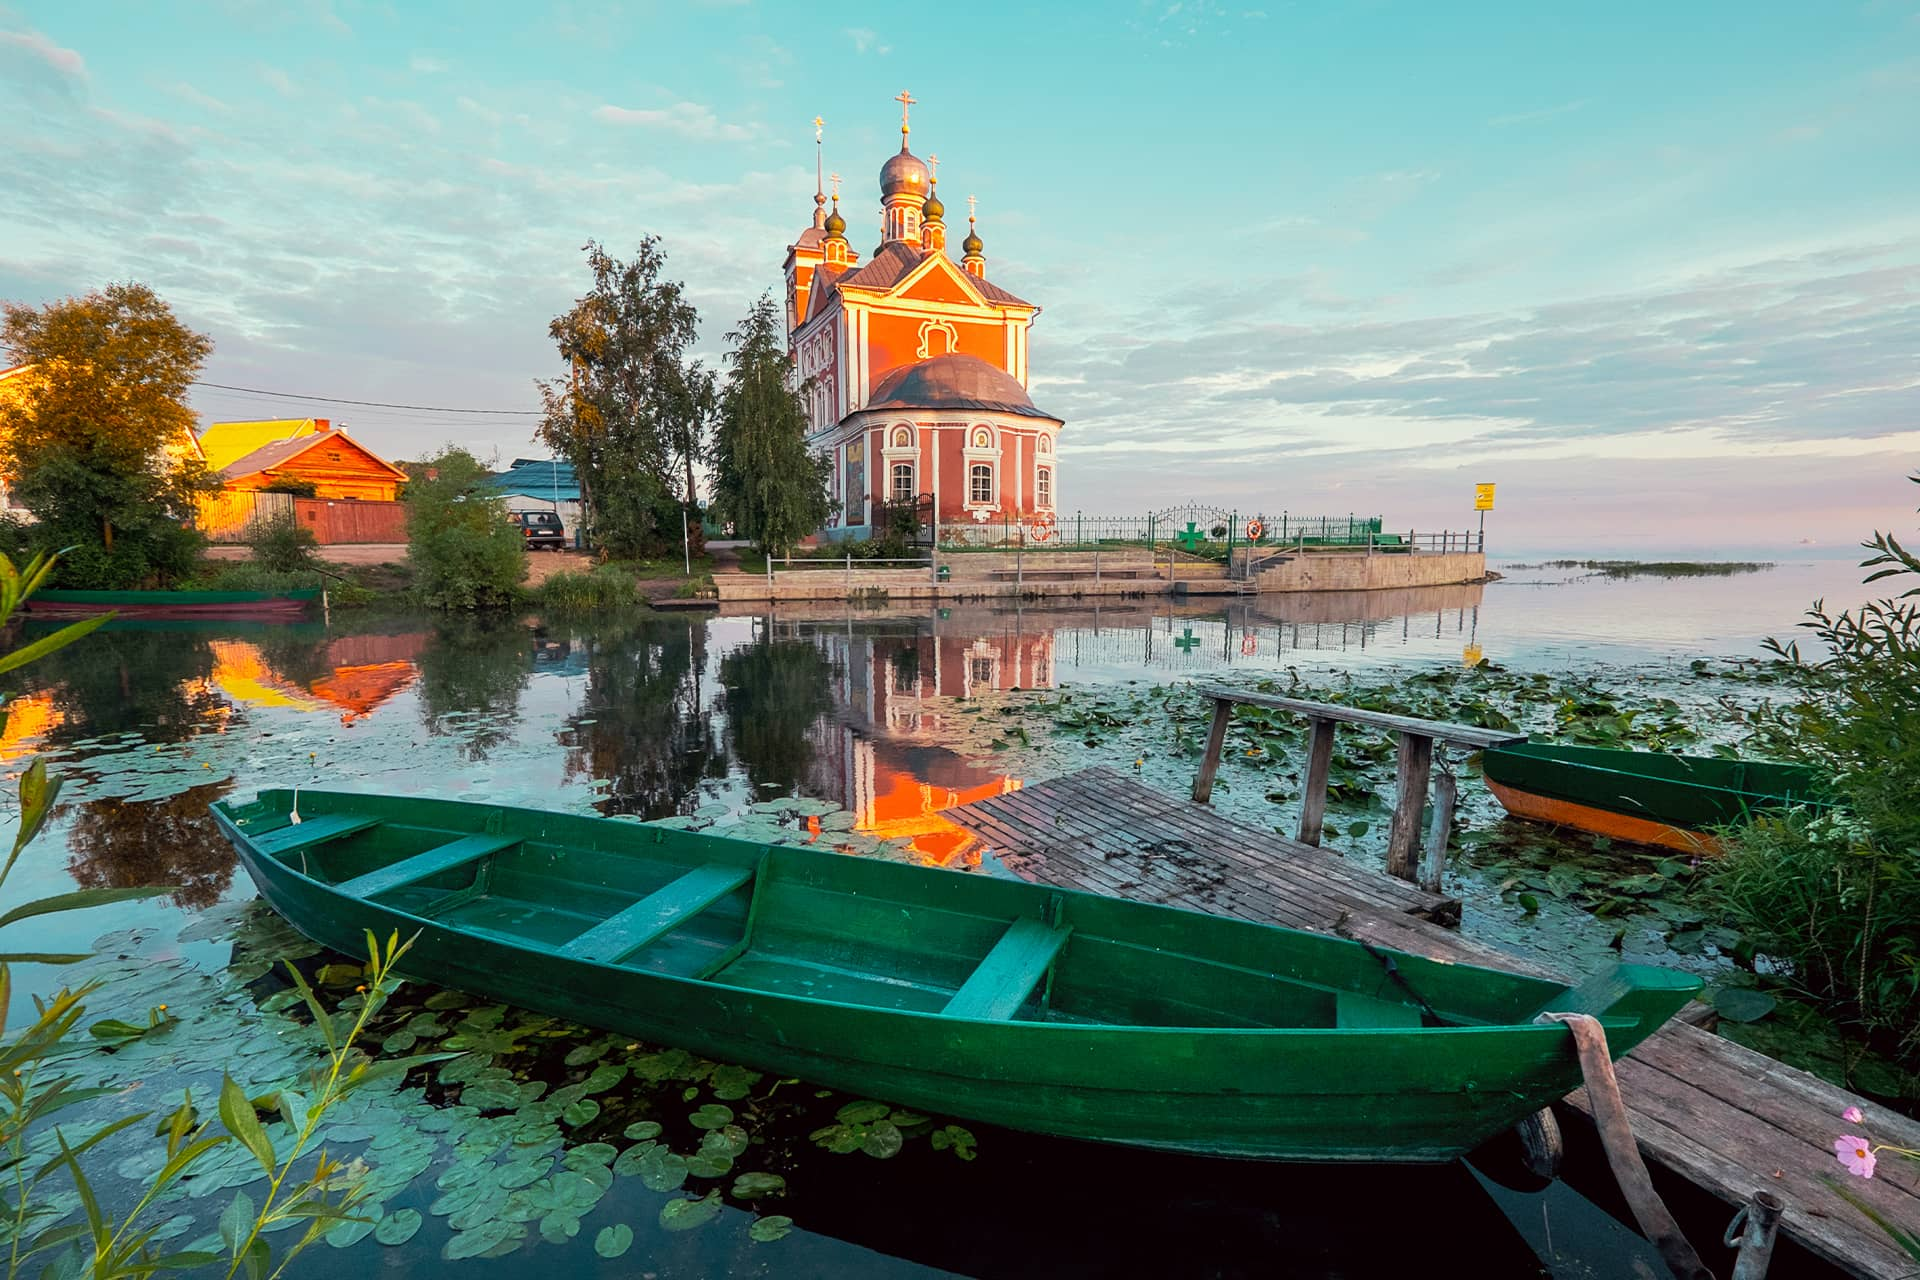 A picturesque small red church on the lake, green metal fence with a cross, a wooden fishing boat on the lake